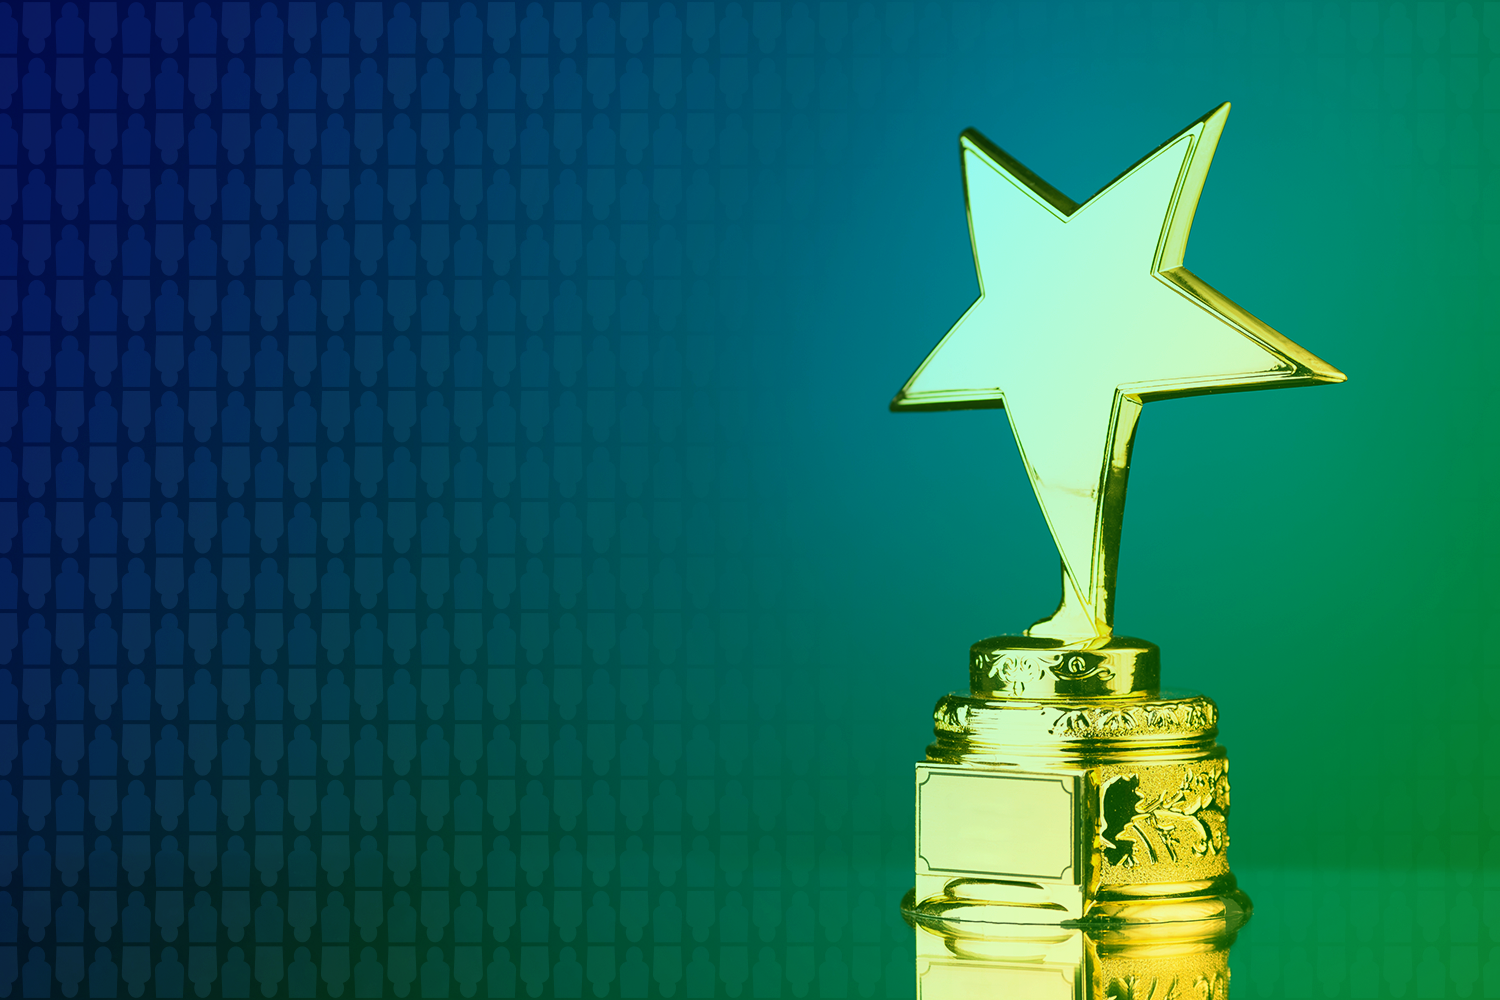 color-treated image of an award shaped like a five-pointed star